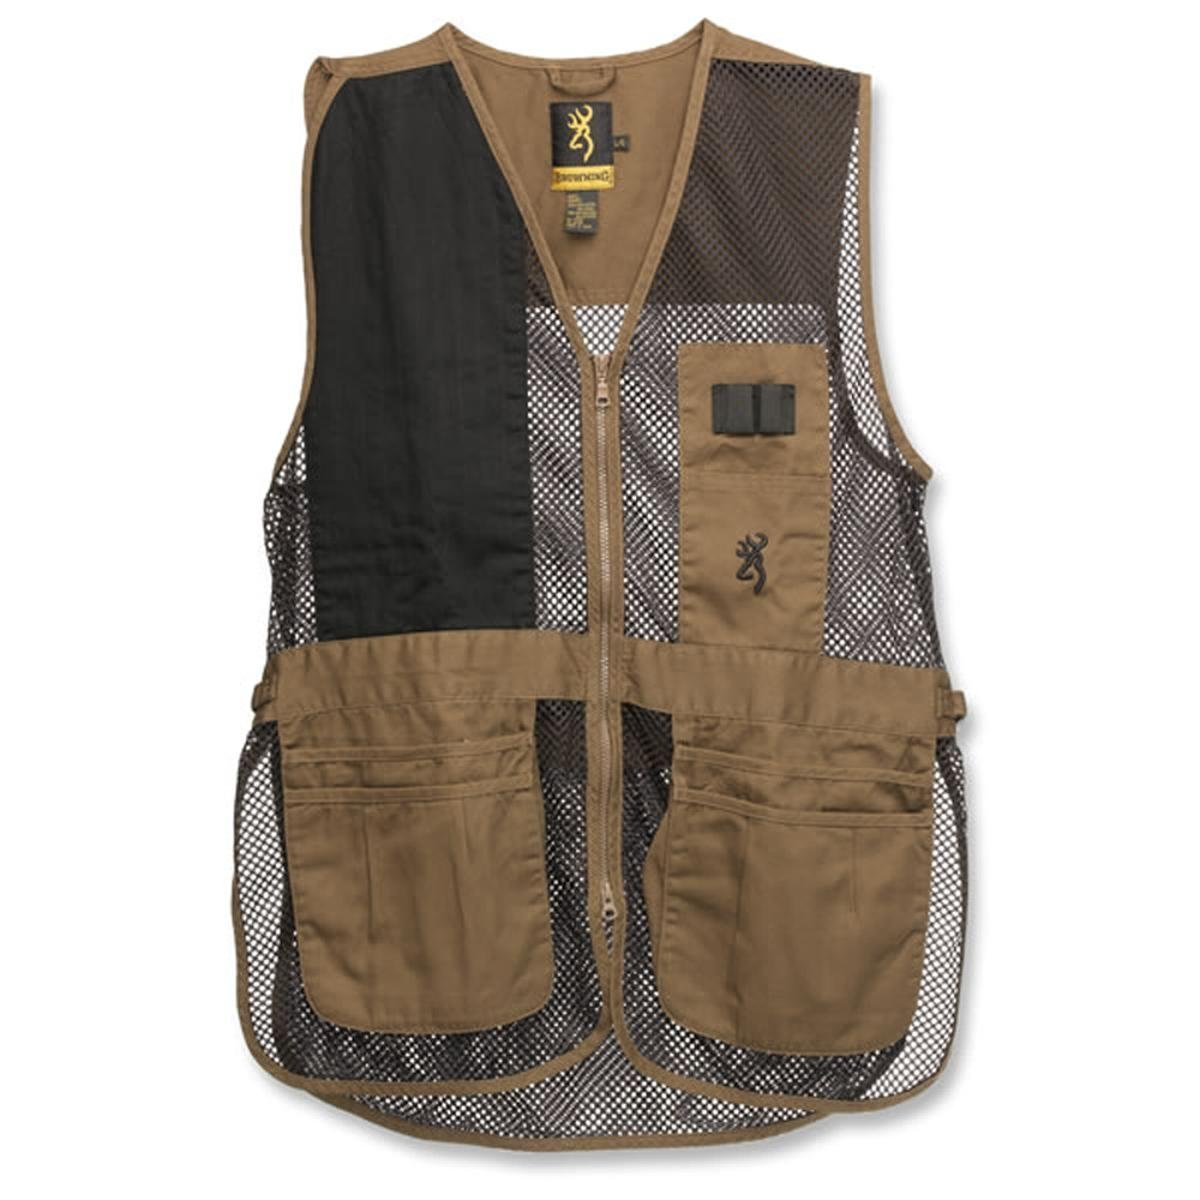 Browning, Trapper Creek Vest, Clay/Black Small by Browning (Image #1)